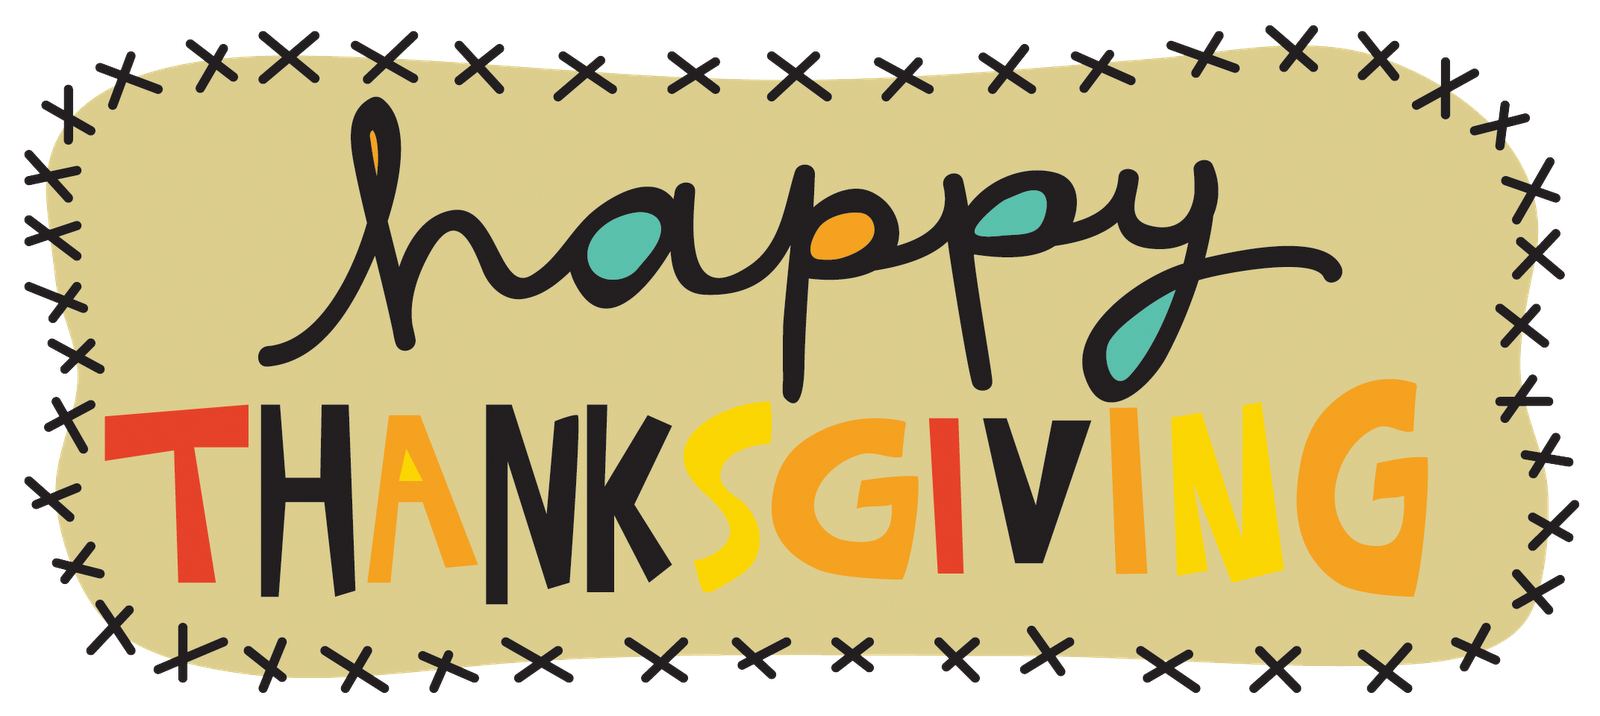 1600x716 Thanksgiving Clip Art In Spanish Happy Easter Amp Thanksgiving 2018